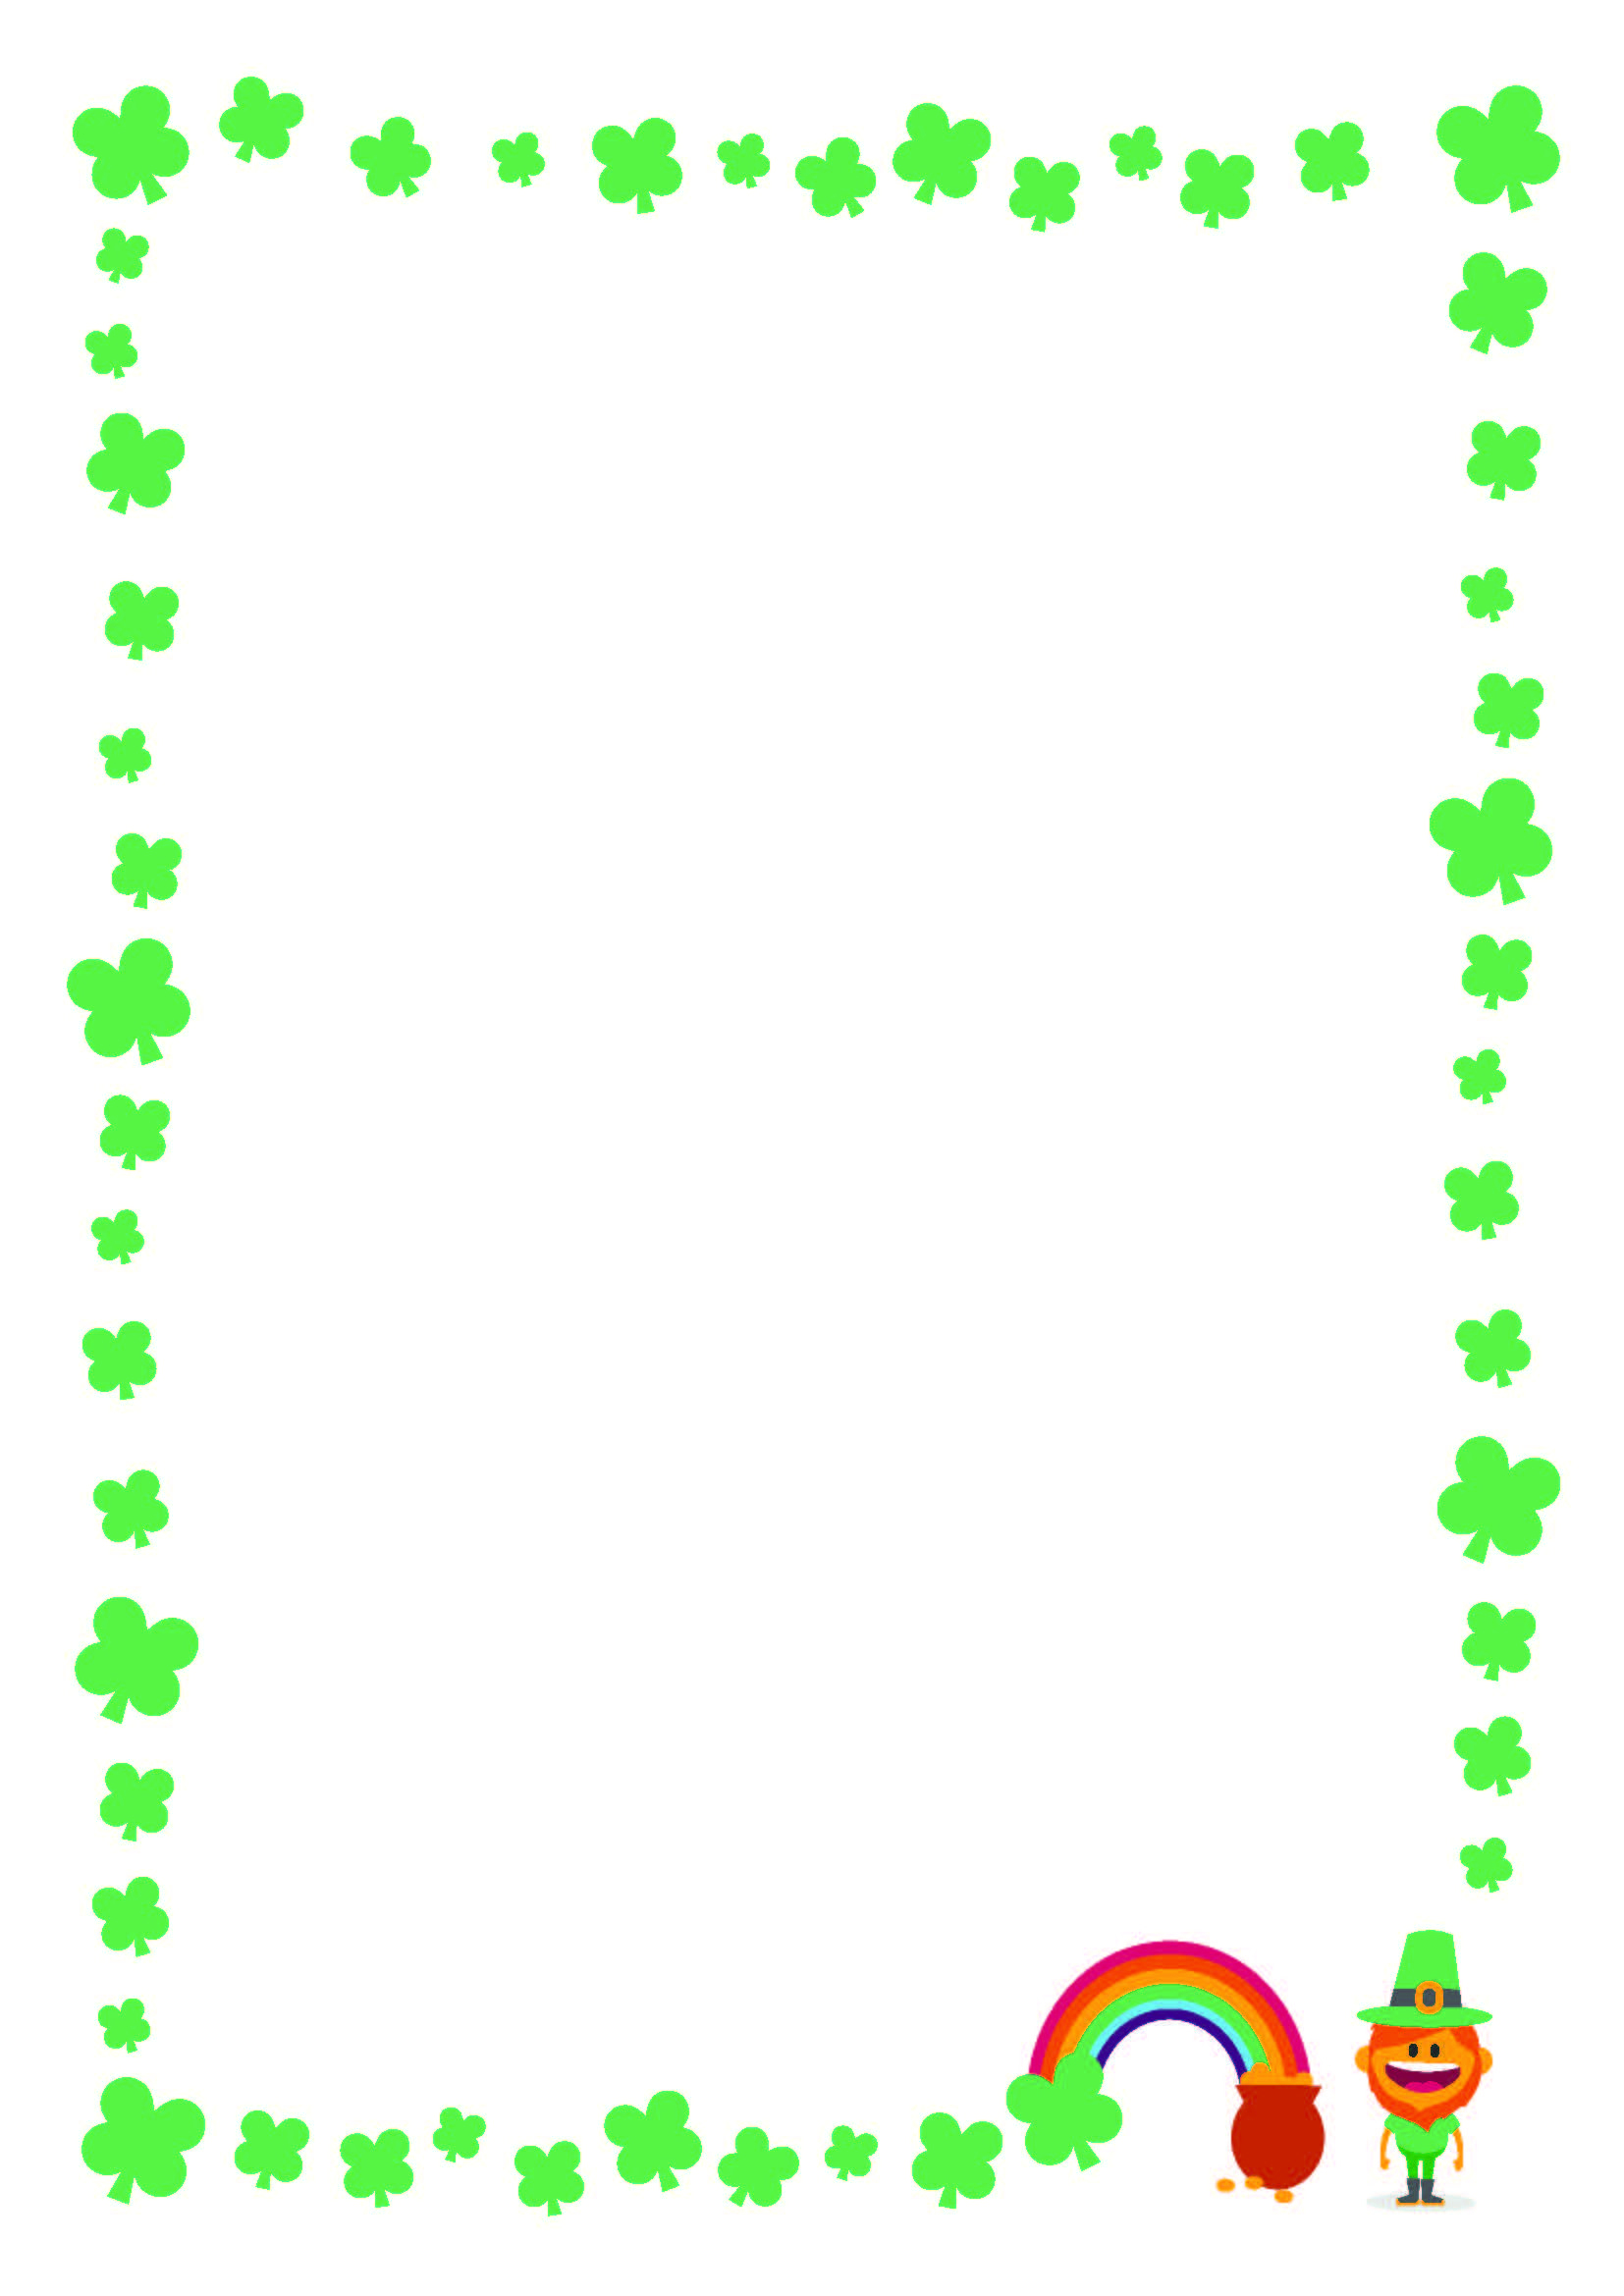 Free St. Patrick's Day Printable Writing Paper With Clover Border - Free Printable Bat Writing Paper